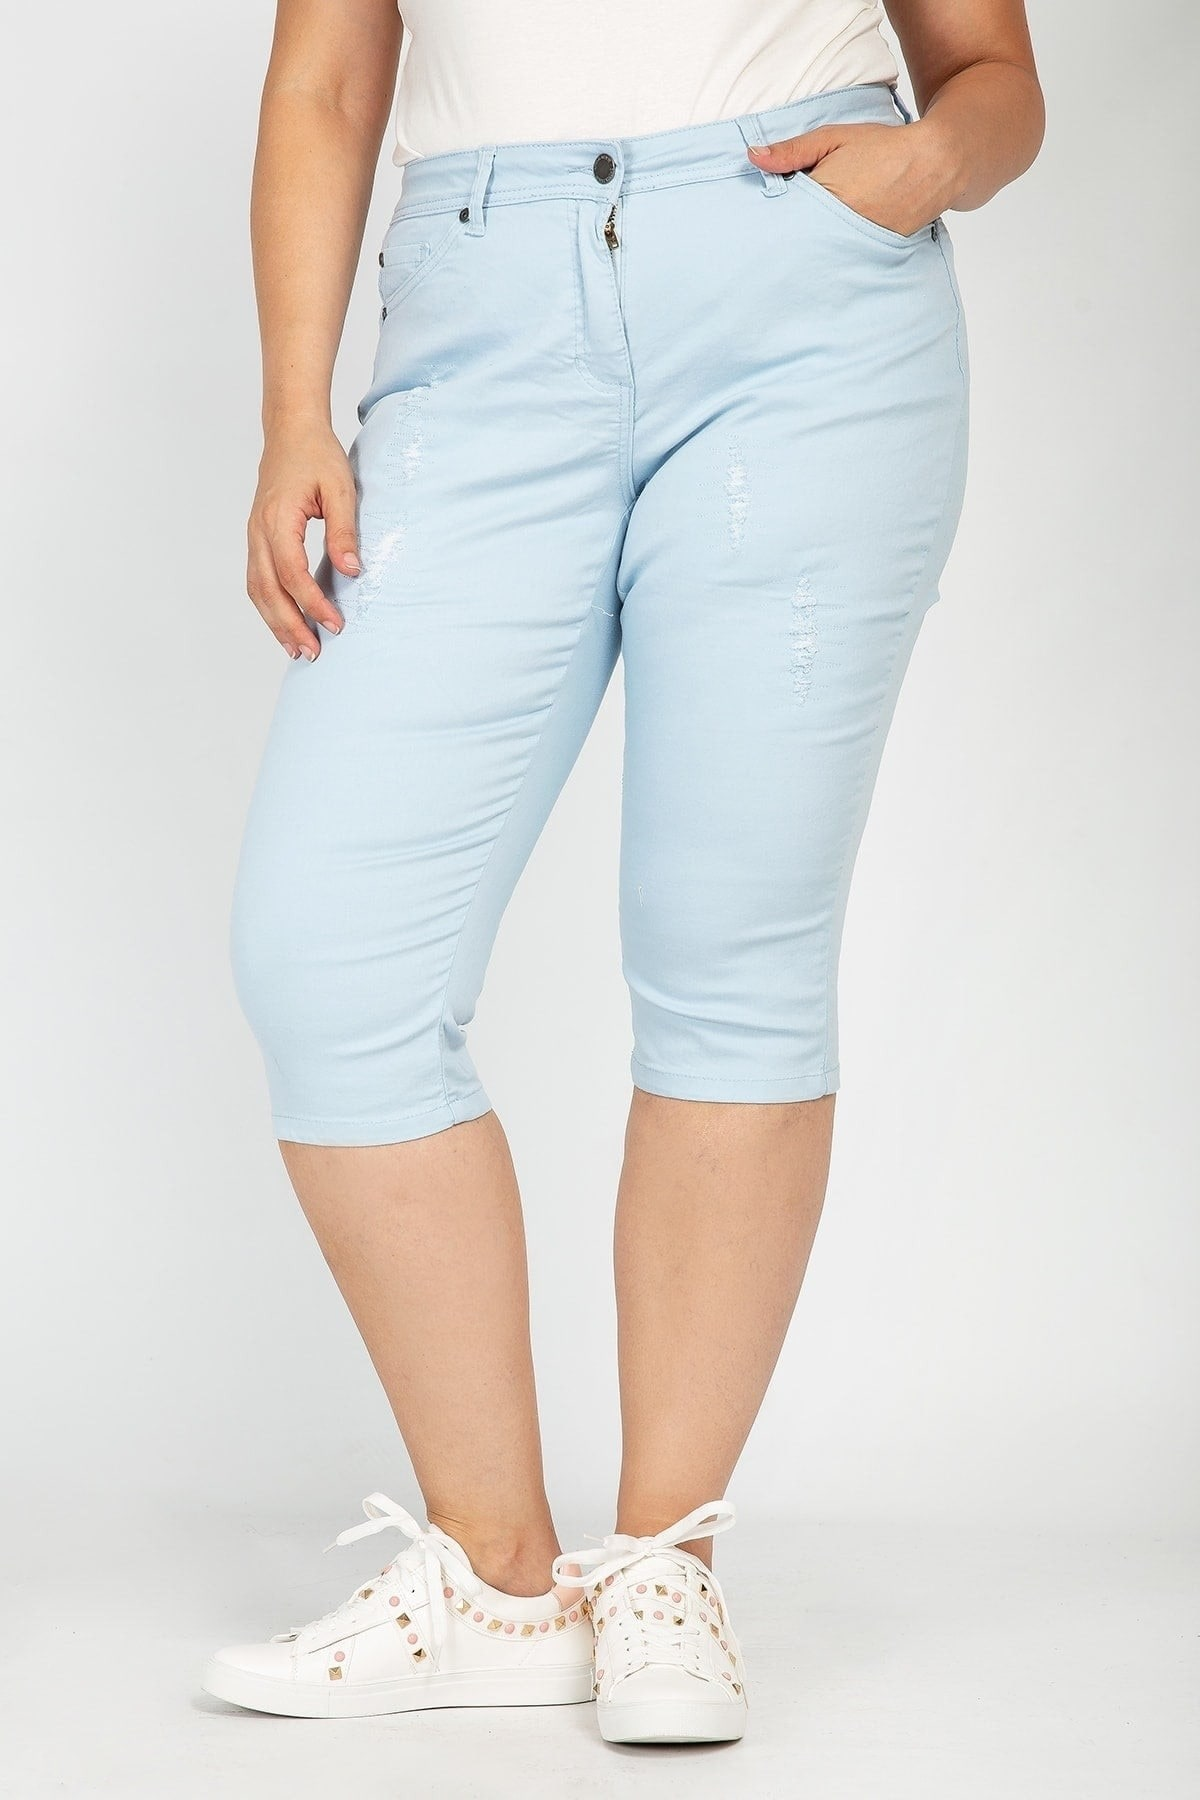 Cotton bermuda shorts with distressed details